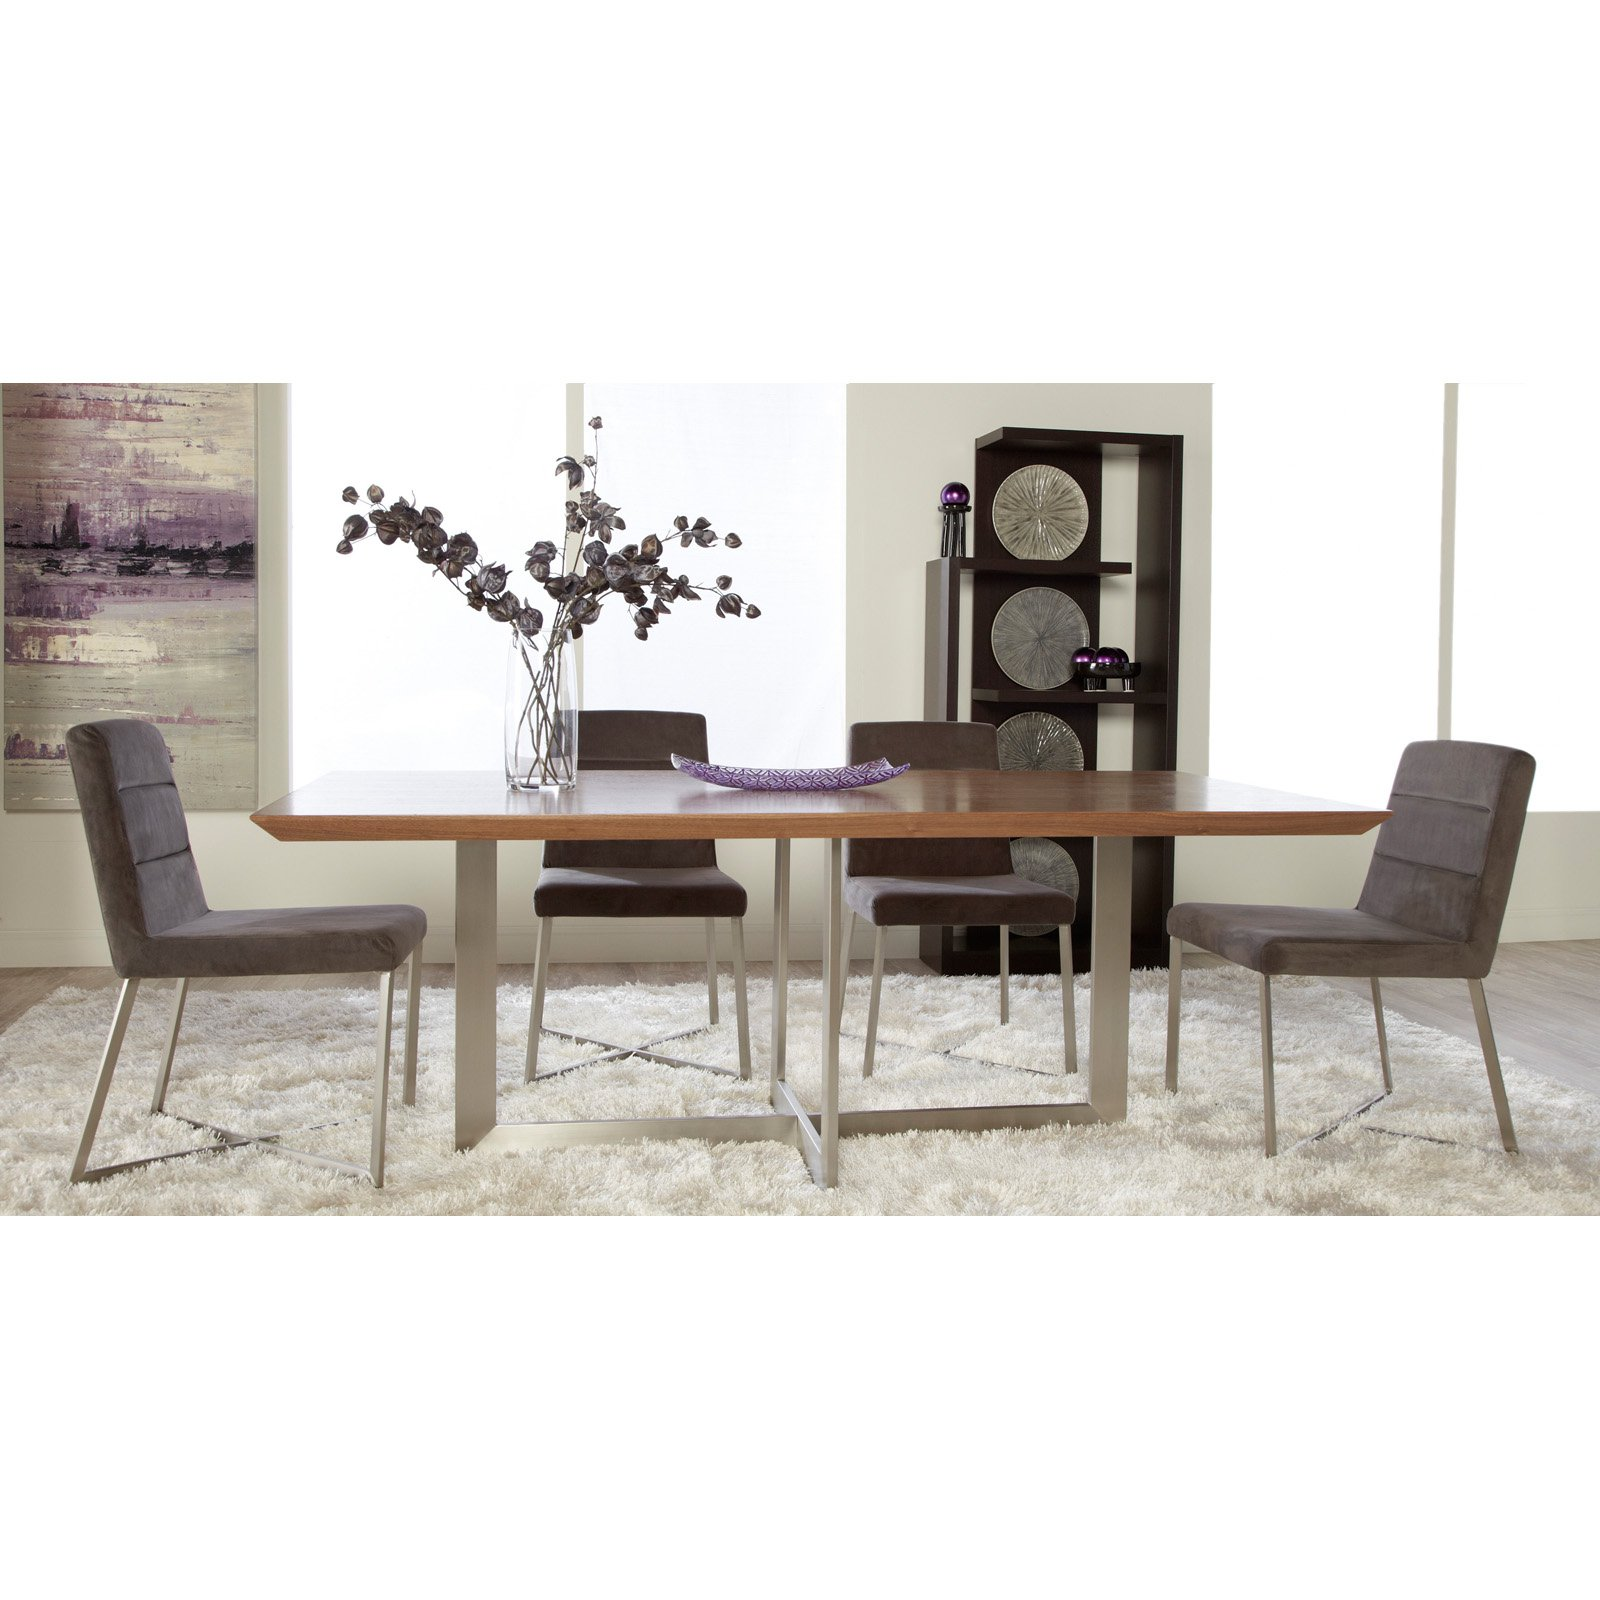 Euro Style Tosca 5 Piece Walnut Dining Table Set - Tosca Grey Chairs